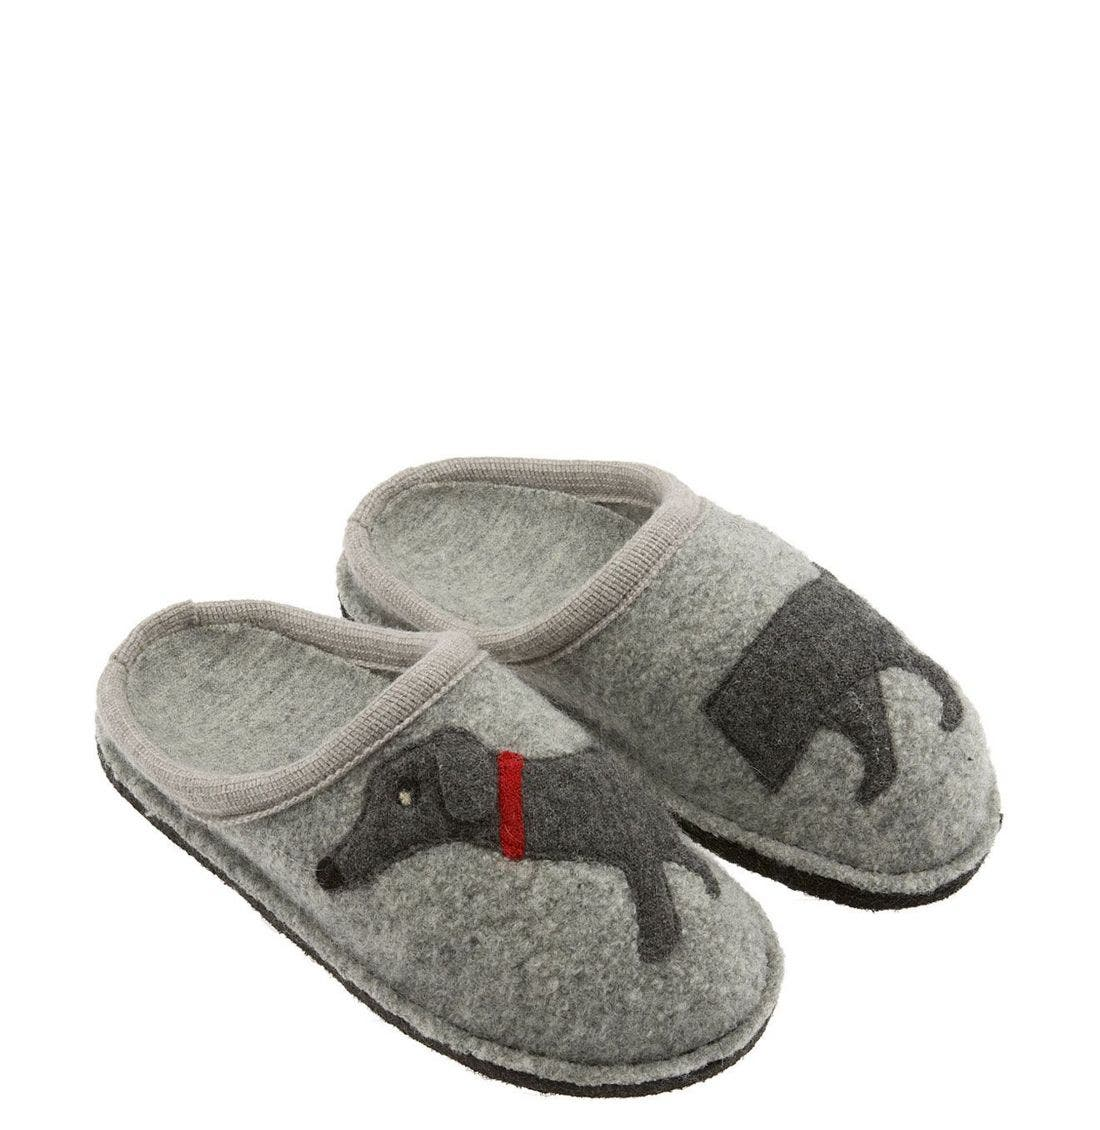 Main Image - Haflinger 'Doggy' Slipper